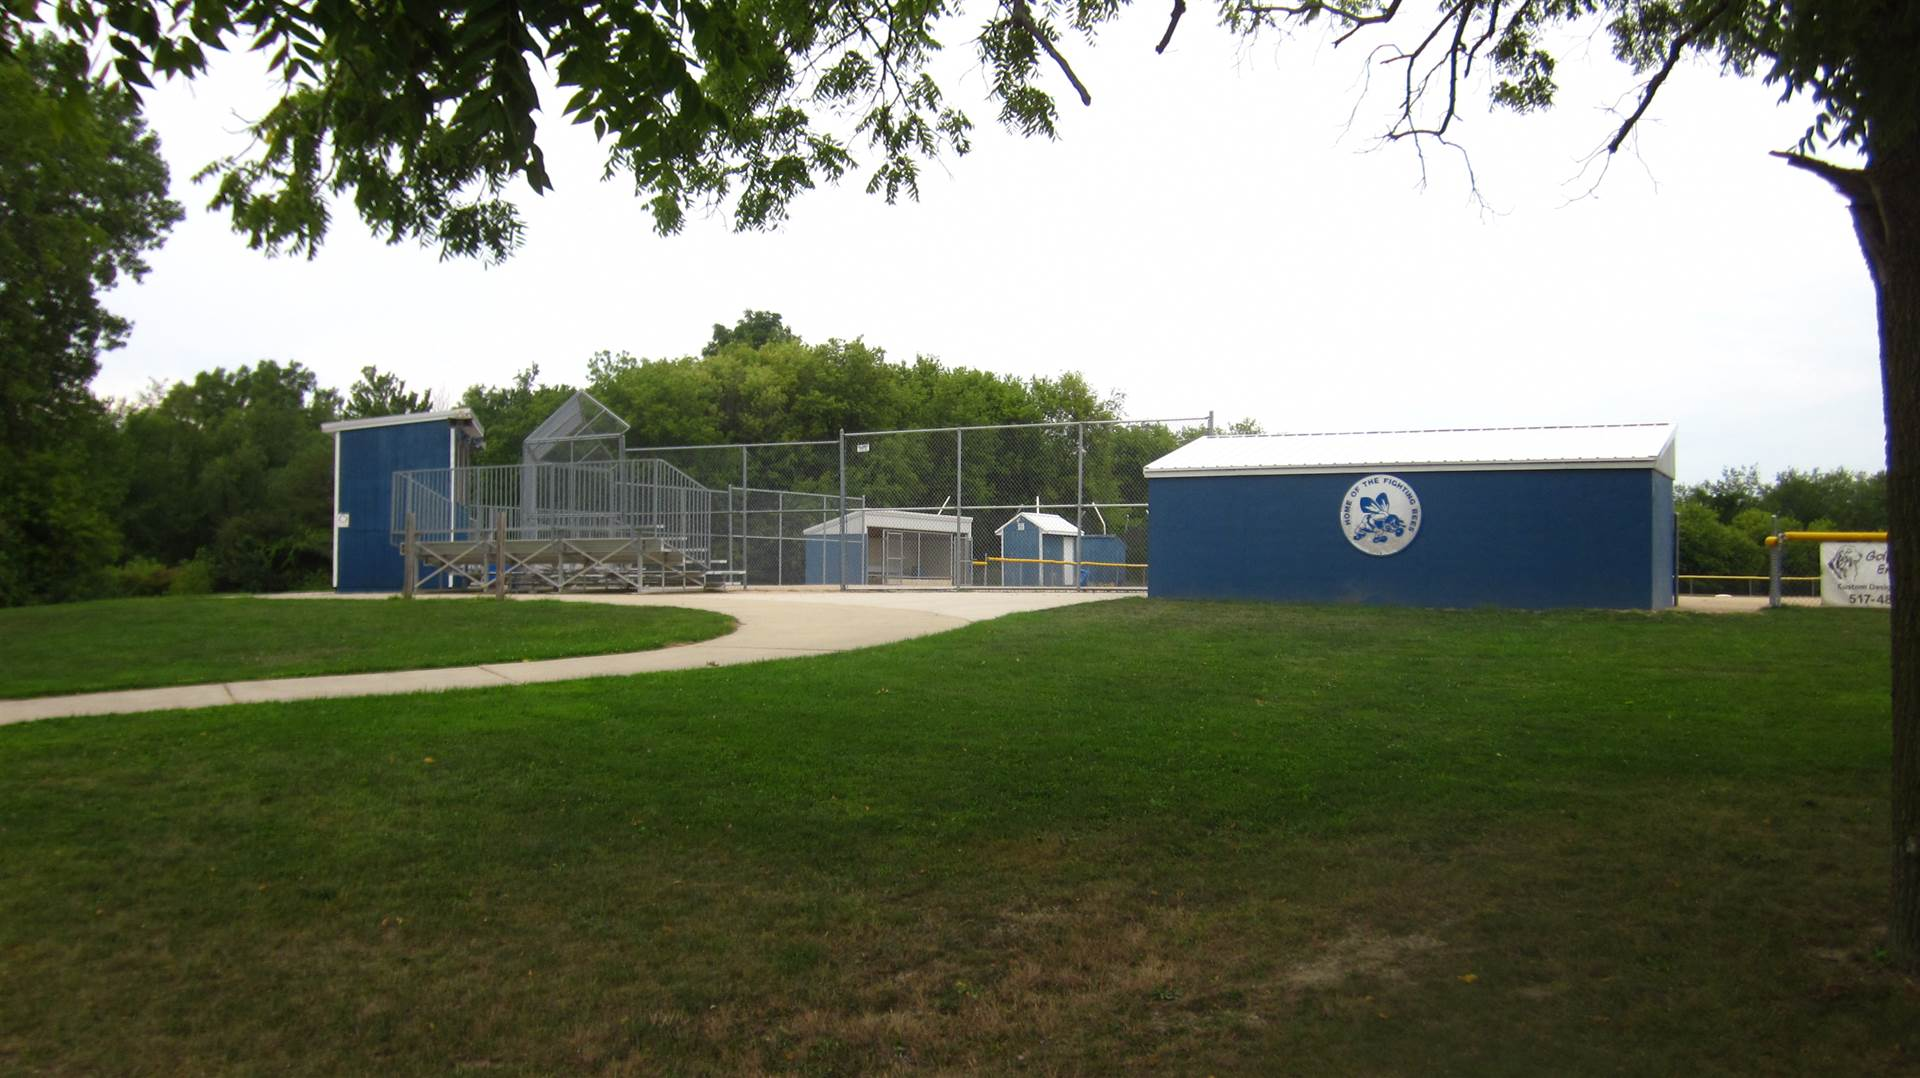 Softball Complex buildings